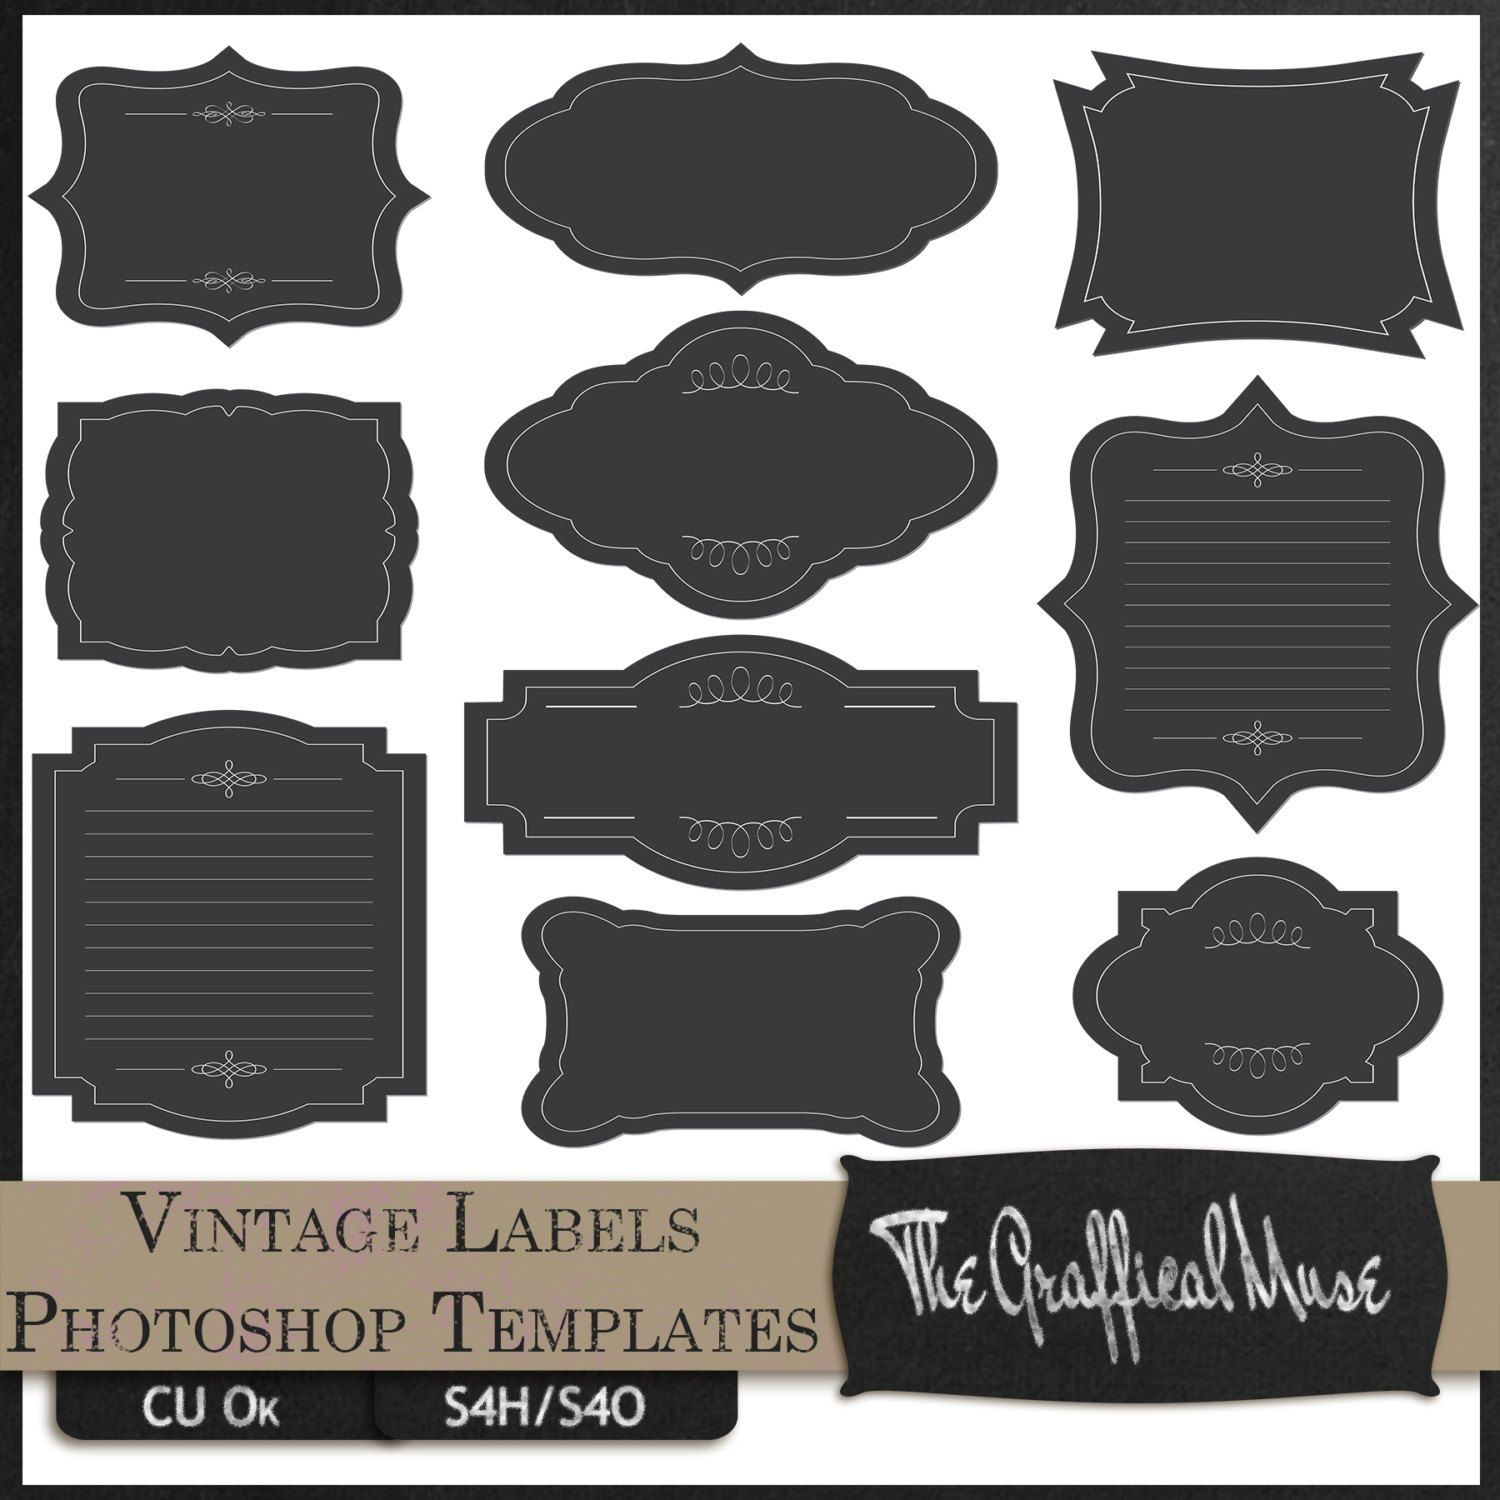 Photoshop Psd Templates  Digital Png Clipart Vintage Labels